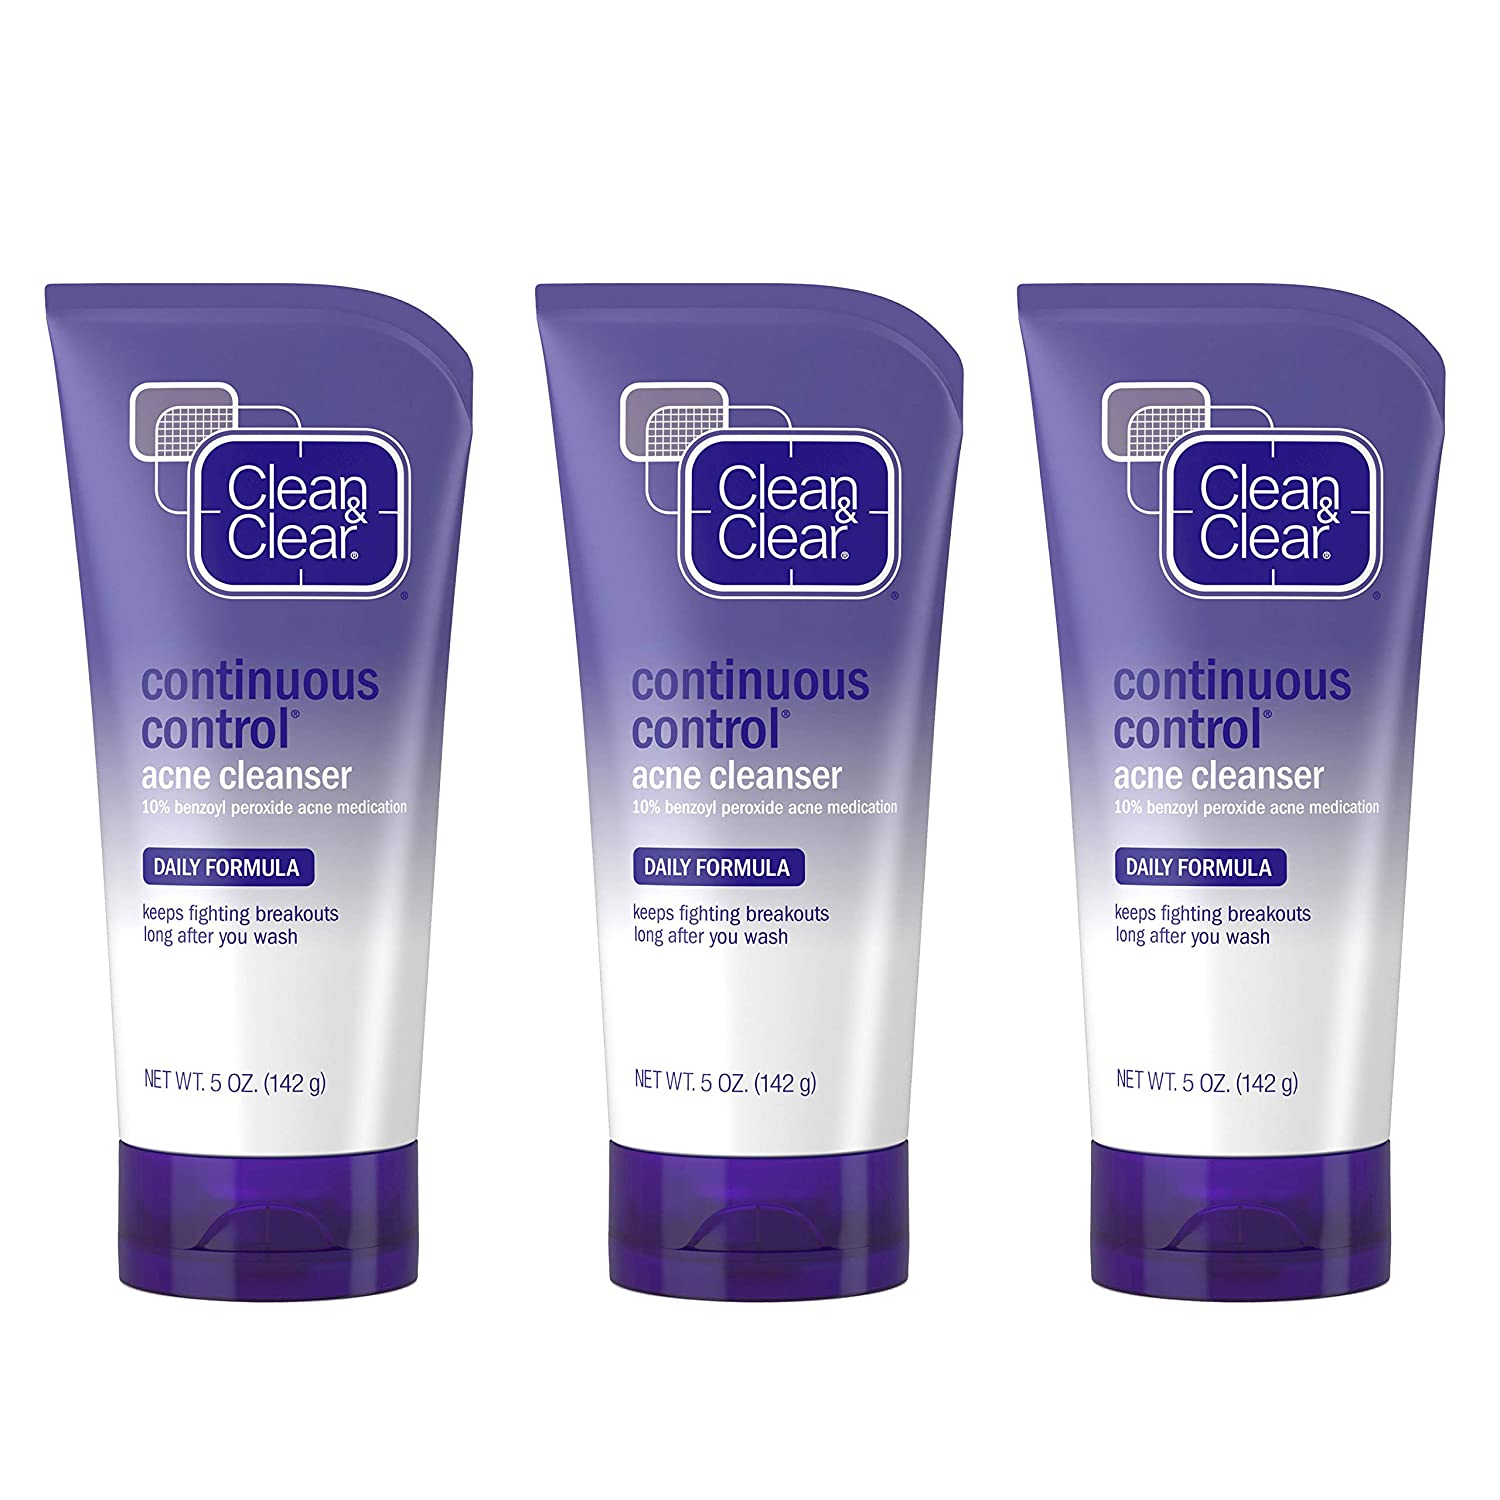 Clean & Clear Continuous Control Benzoyl Peroxide Acne Face Wash, Daily Facial Cleanser with Acne Medicine to Treat and Prevent Acne, For Acne-Prone Skin, 5 oz Pack of 3